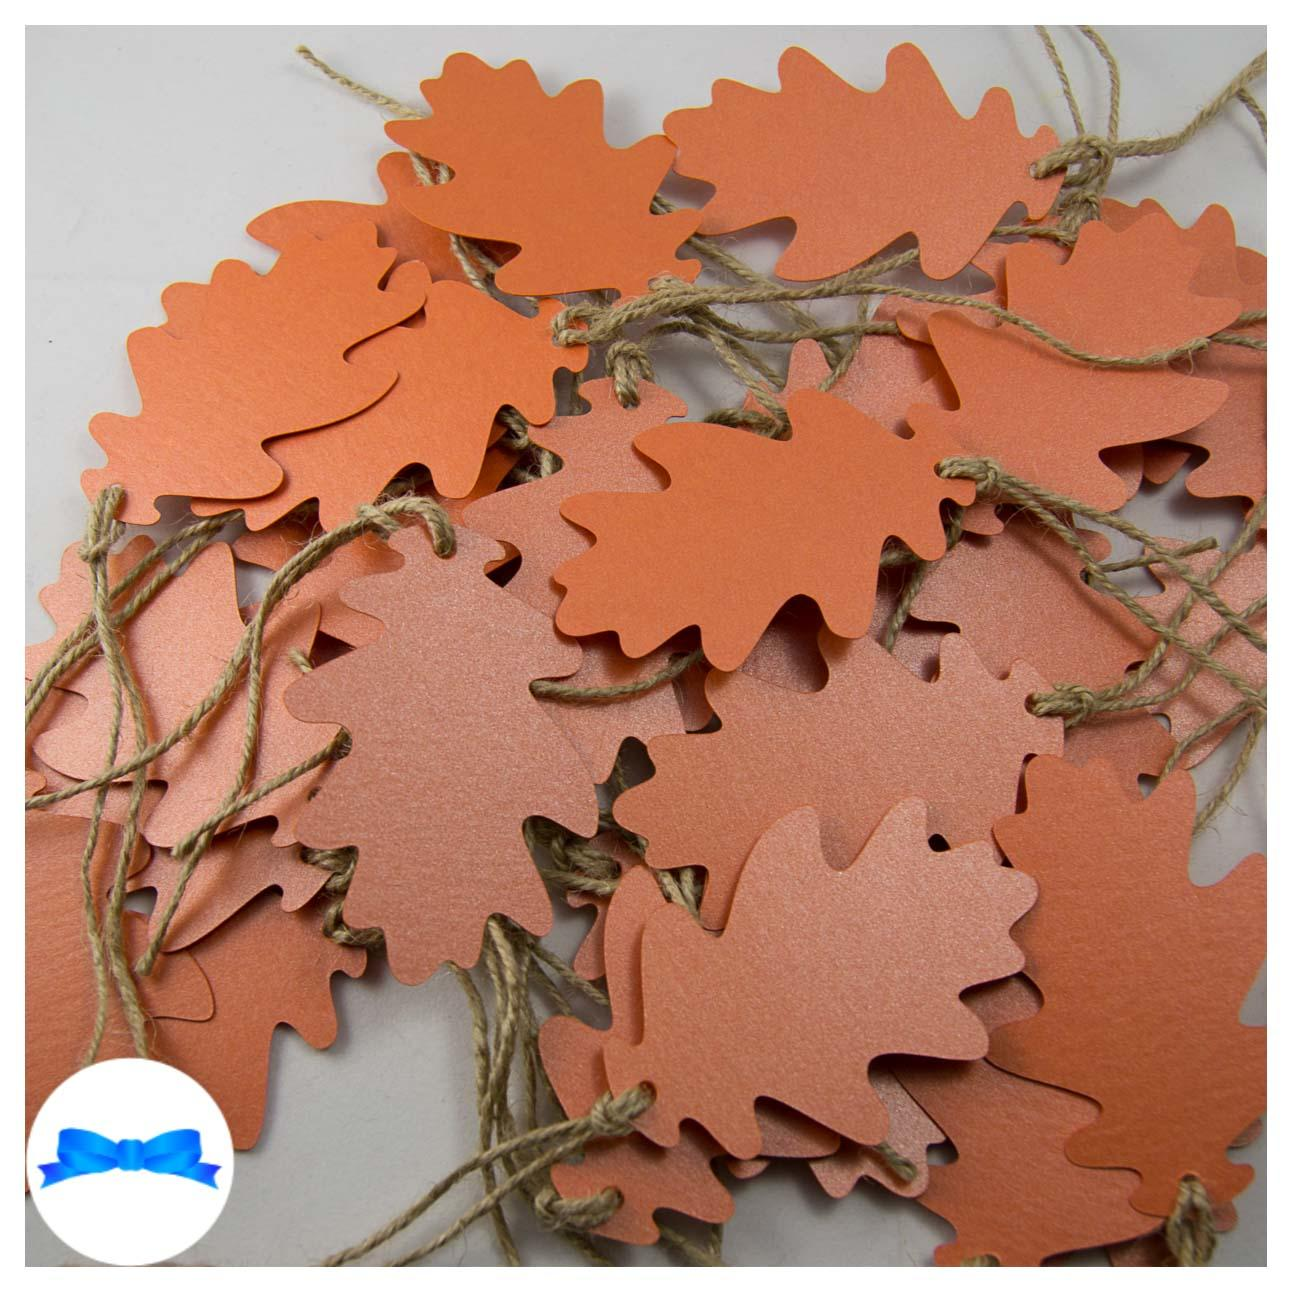 Burnt orange oak leaves